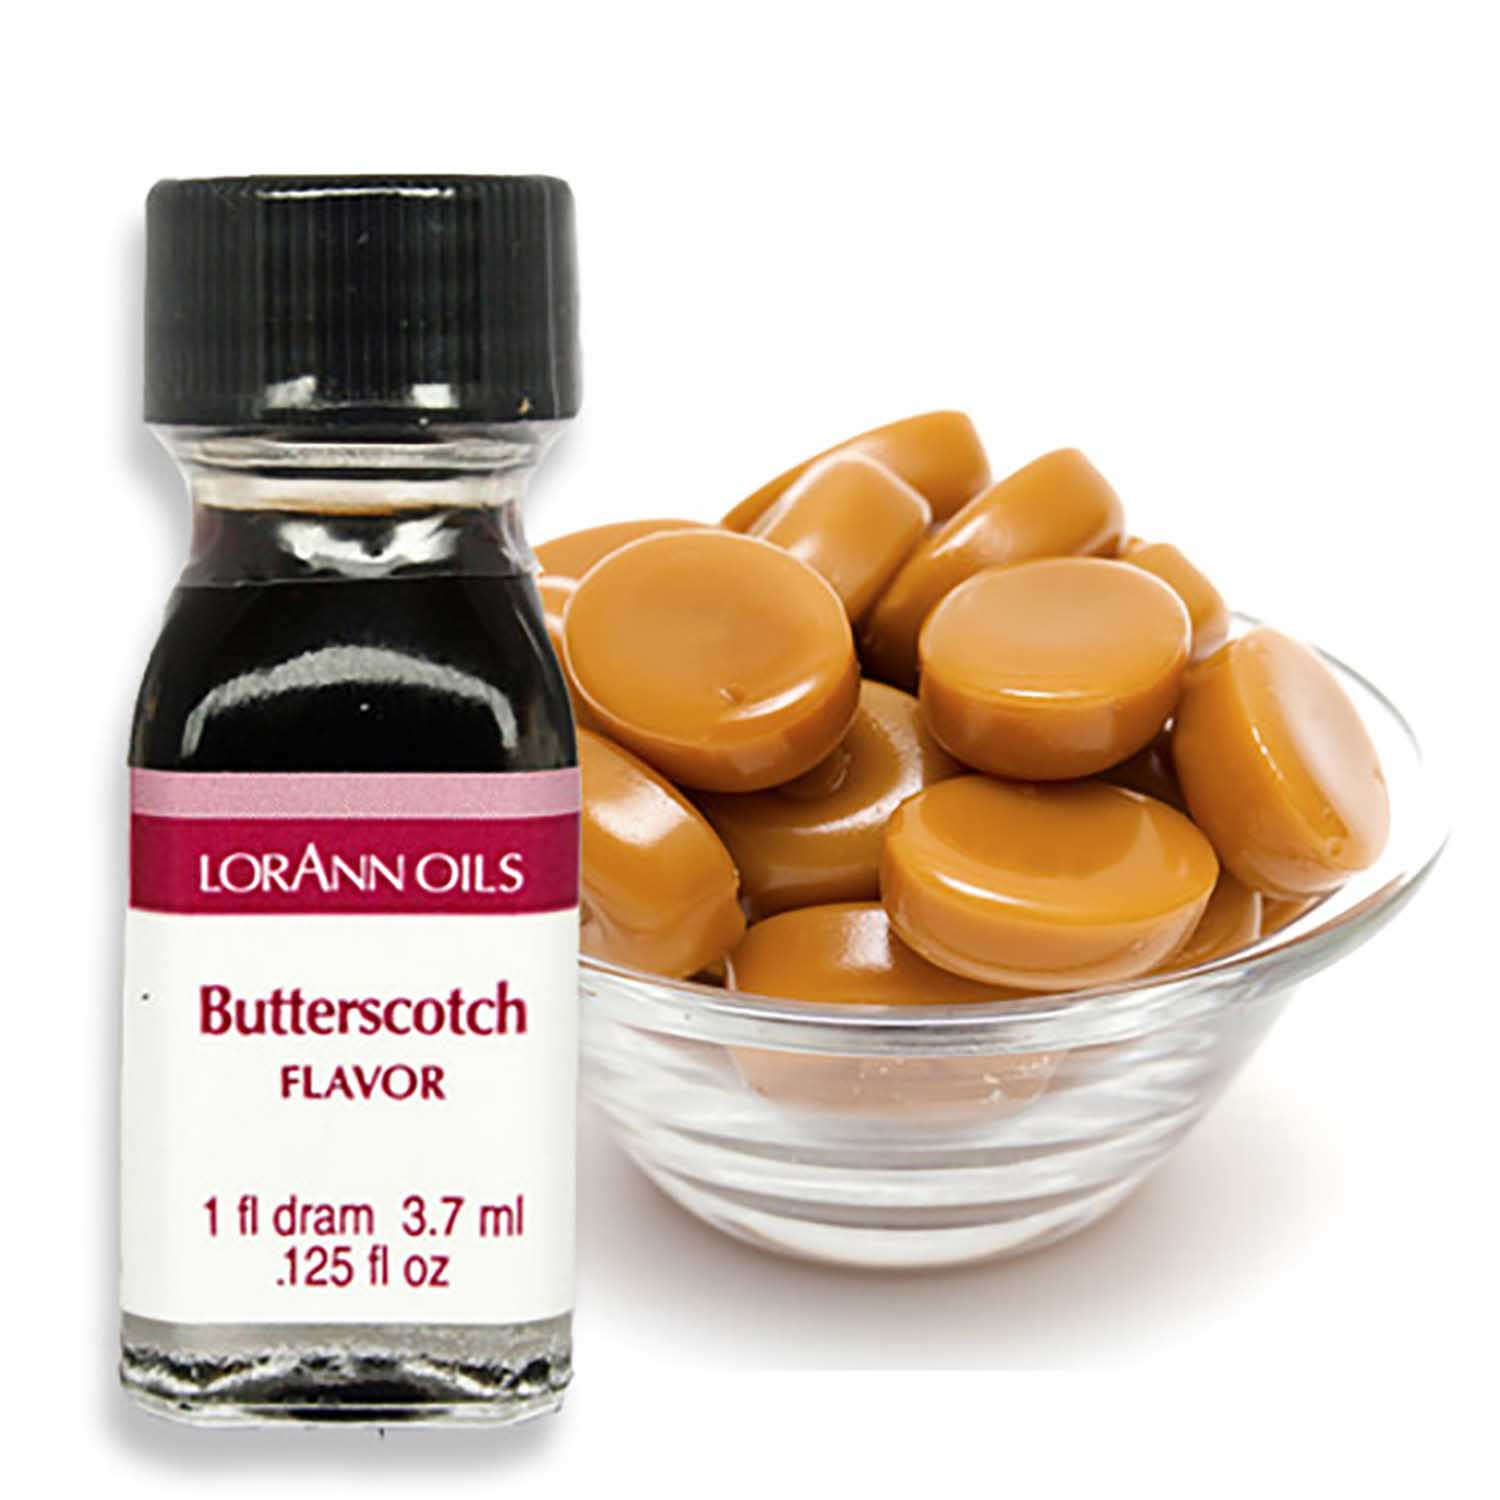 Butterscotch LorAnn Super-Strength Flavor